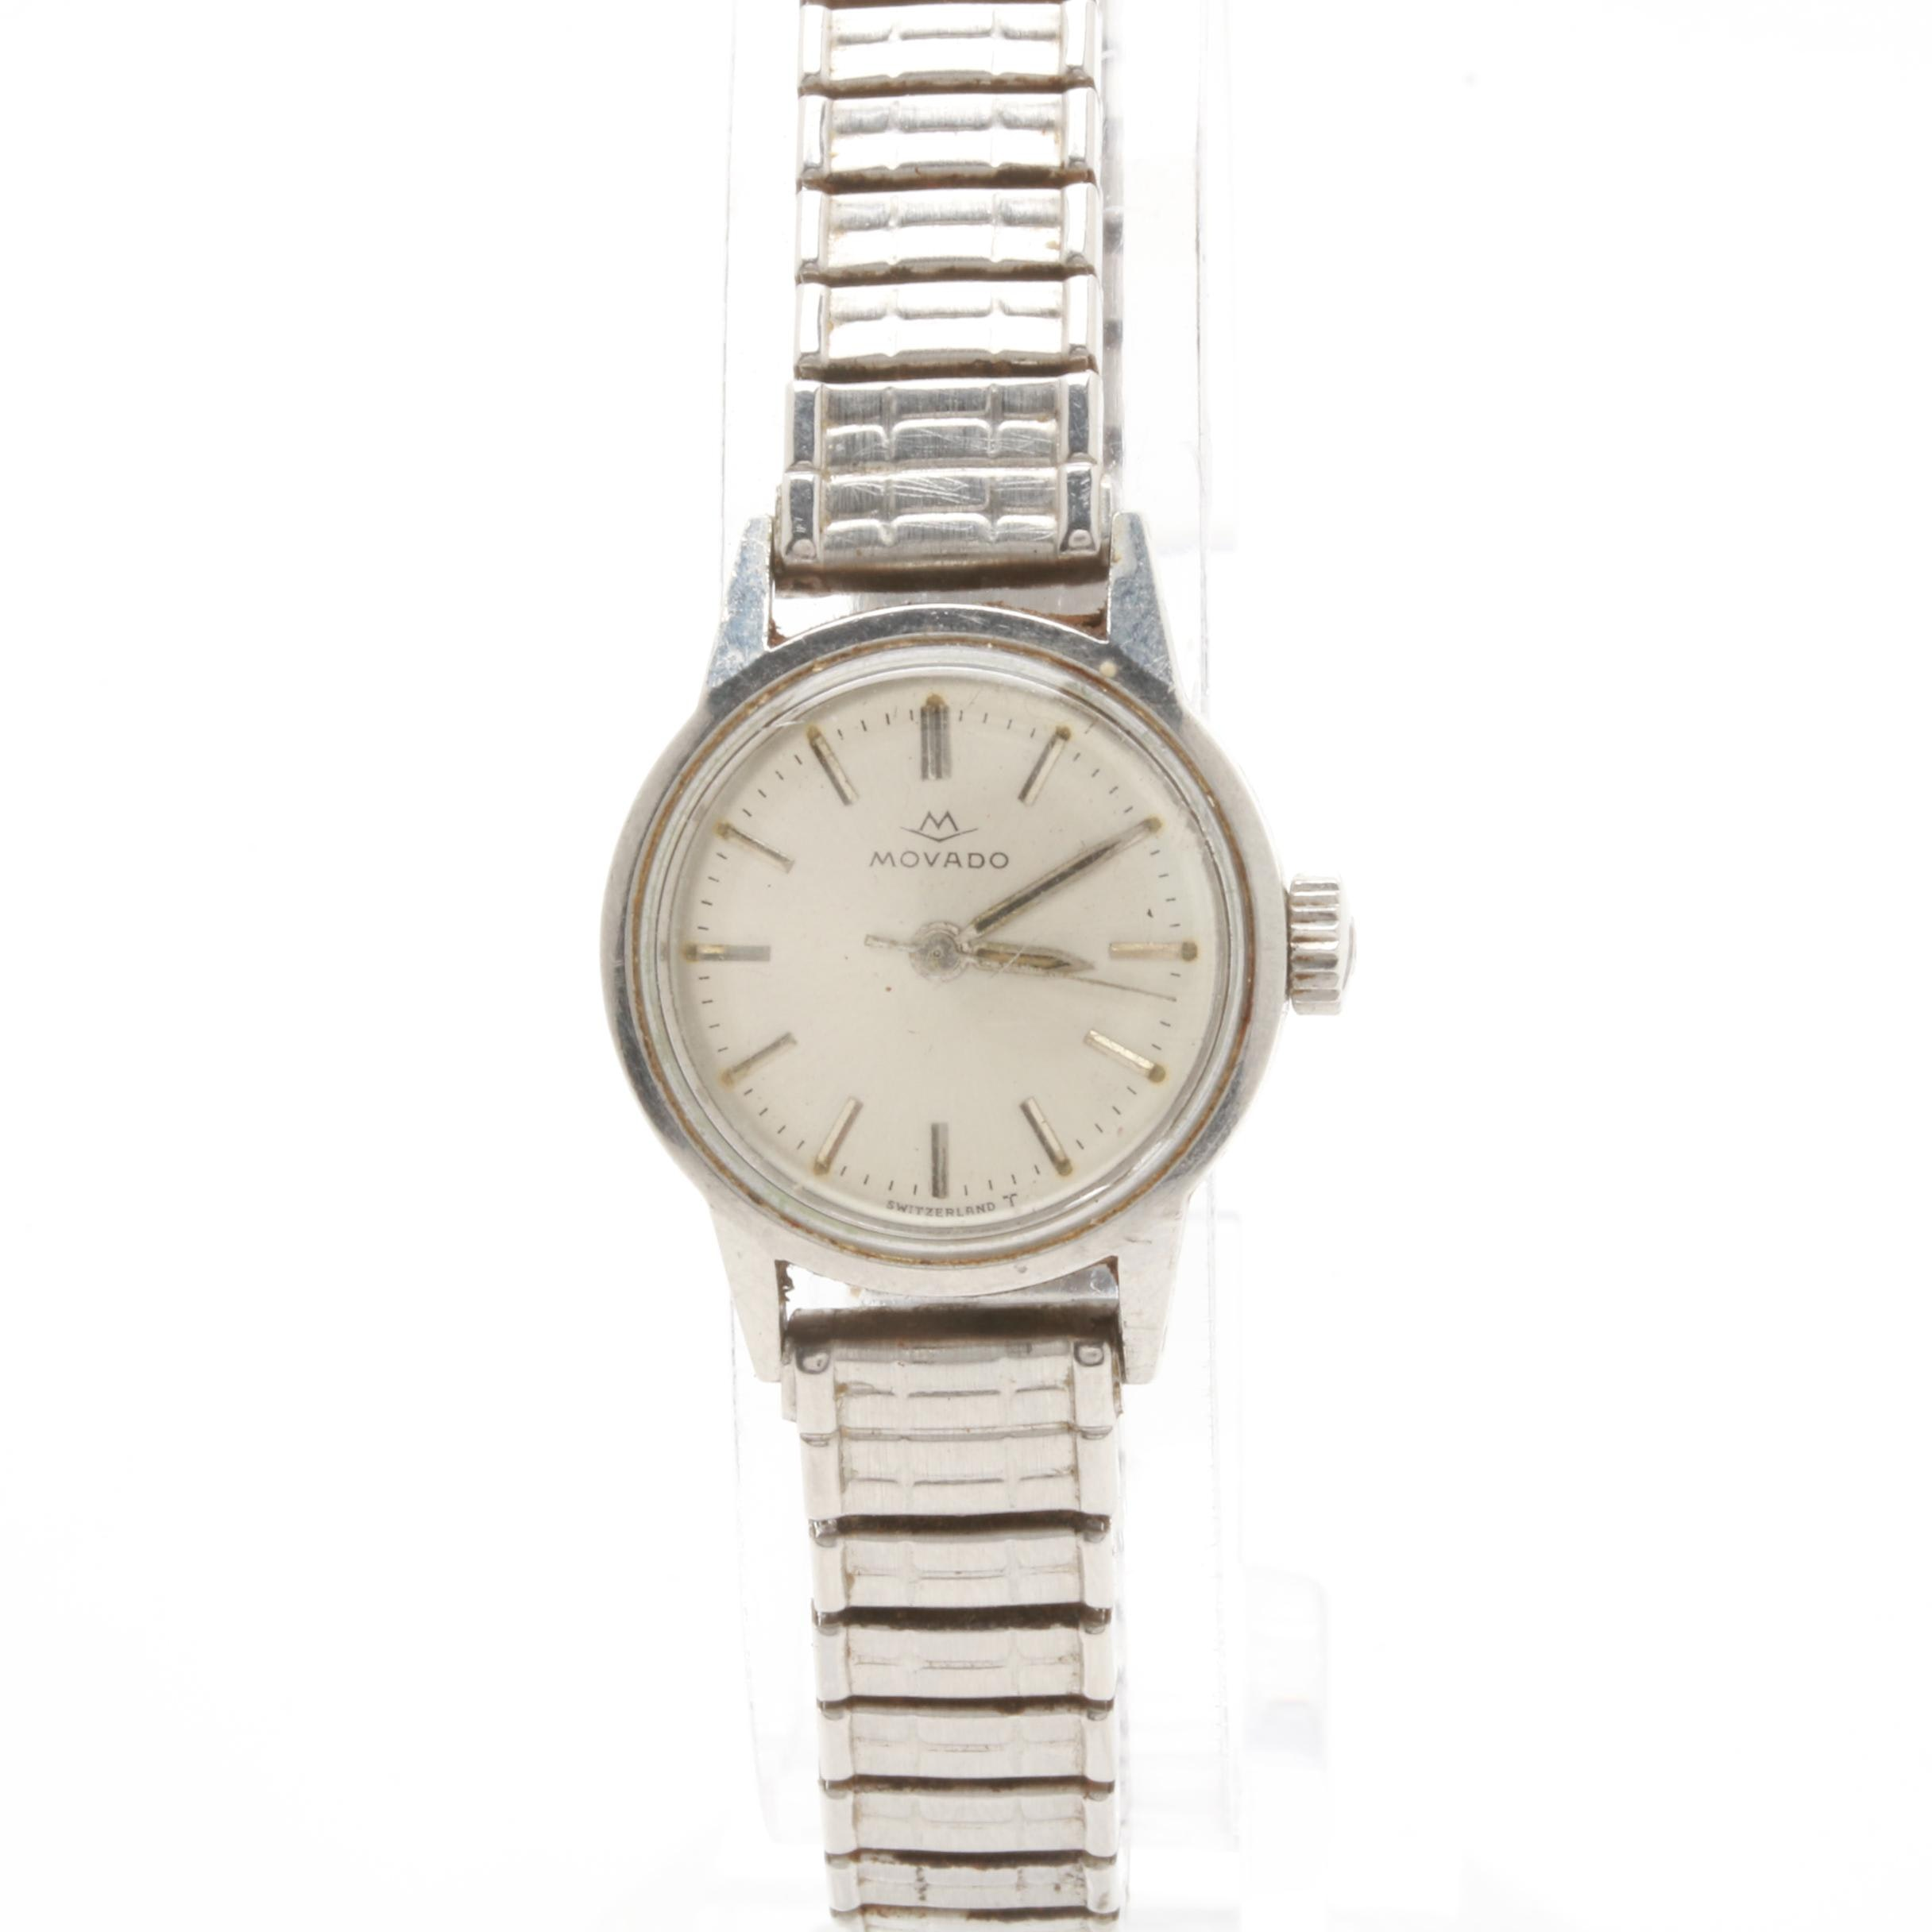 Movado Stainless Steel Expansion Wristwatch